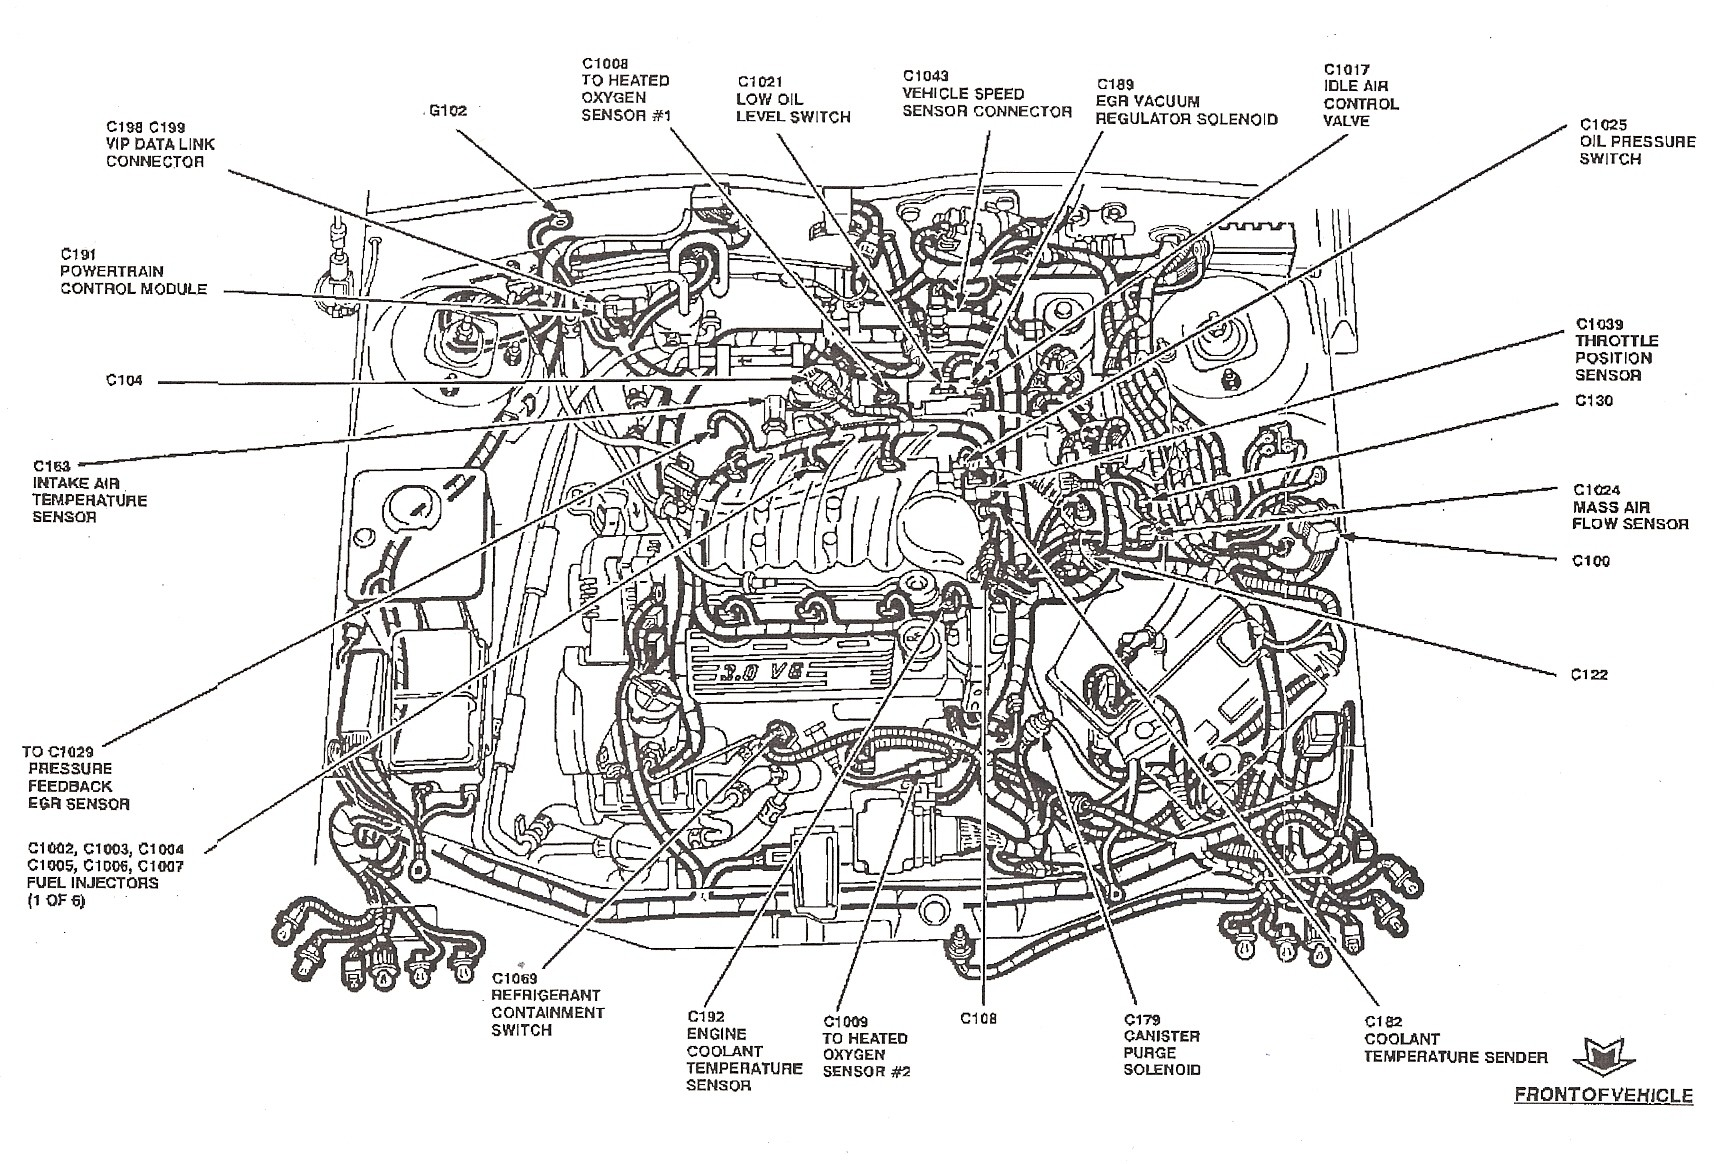 2000 ford focus engine parts diagram  u2022 wiring diagram for free